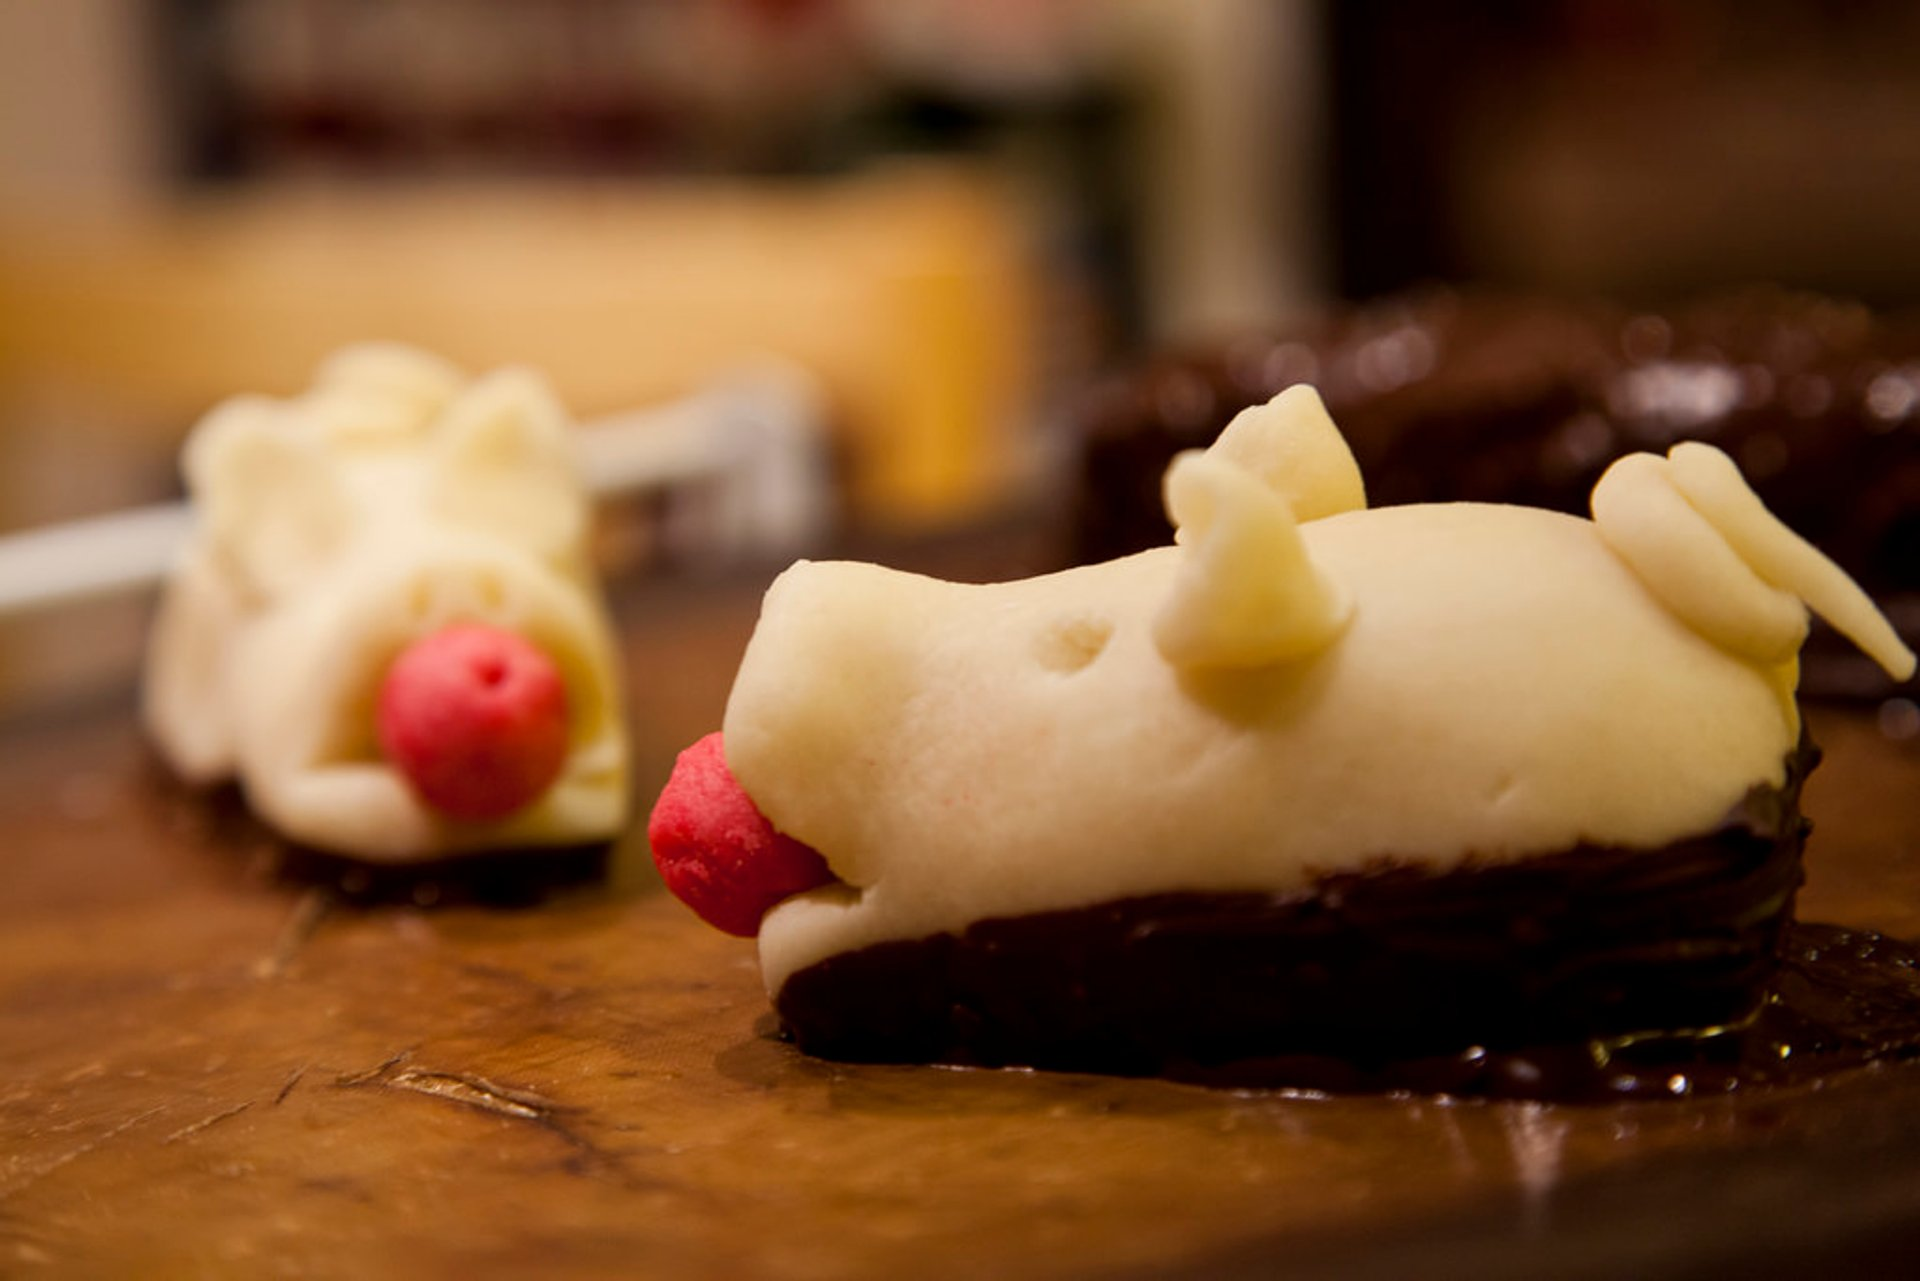 Christmas Desserts: Multekrem, Riskrem, Marzipan Christmas Pig in Norway - Best Season 2020